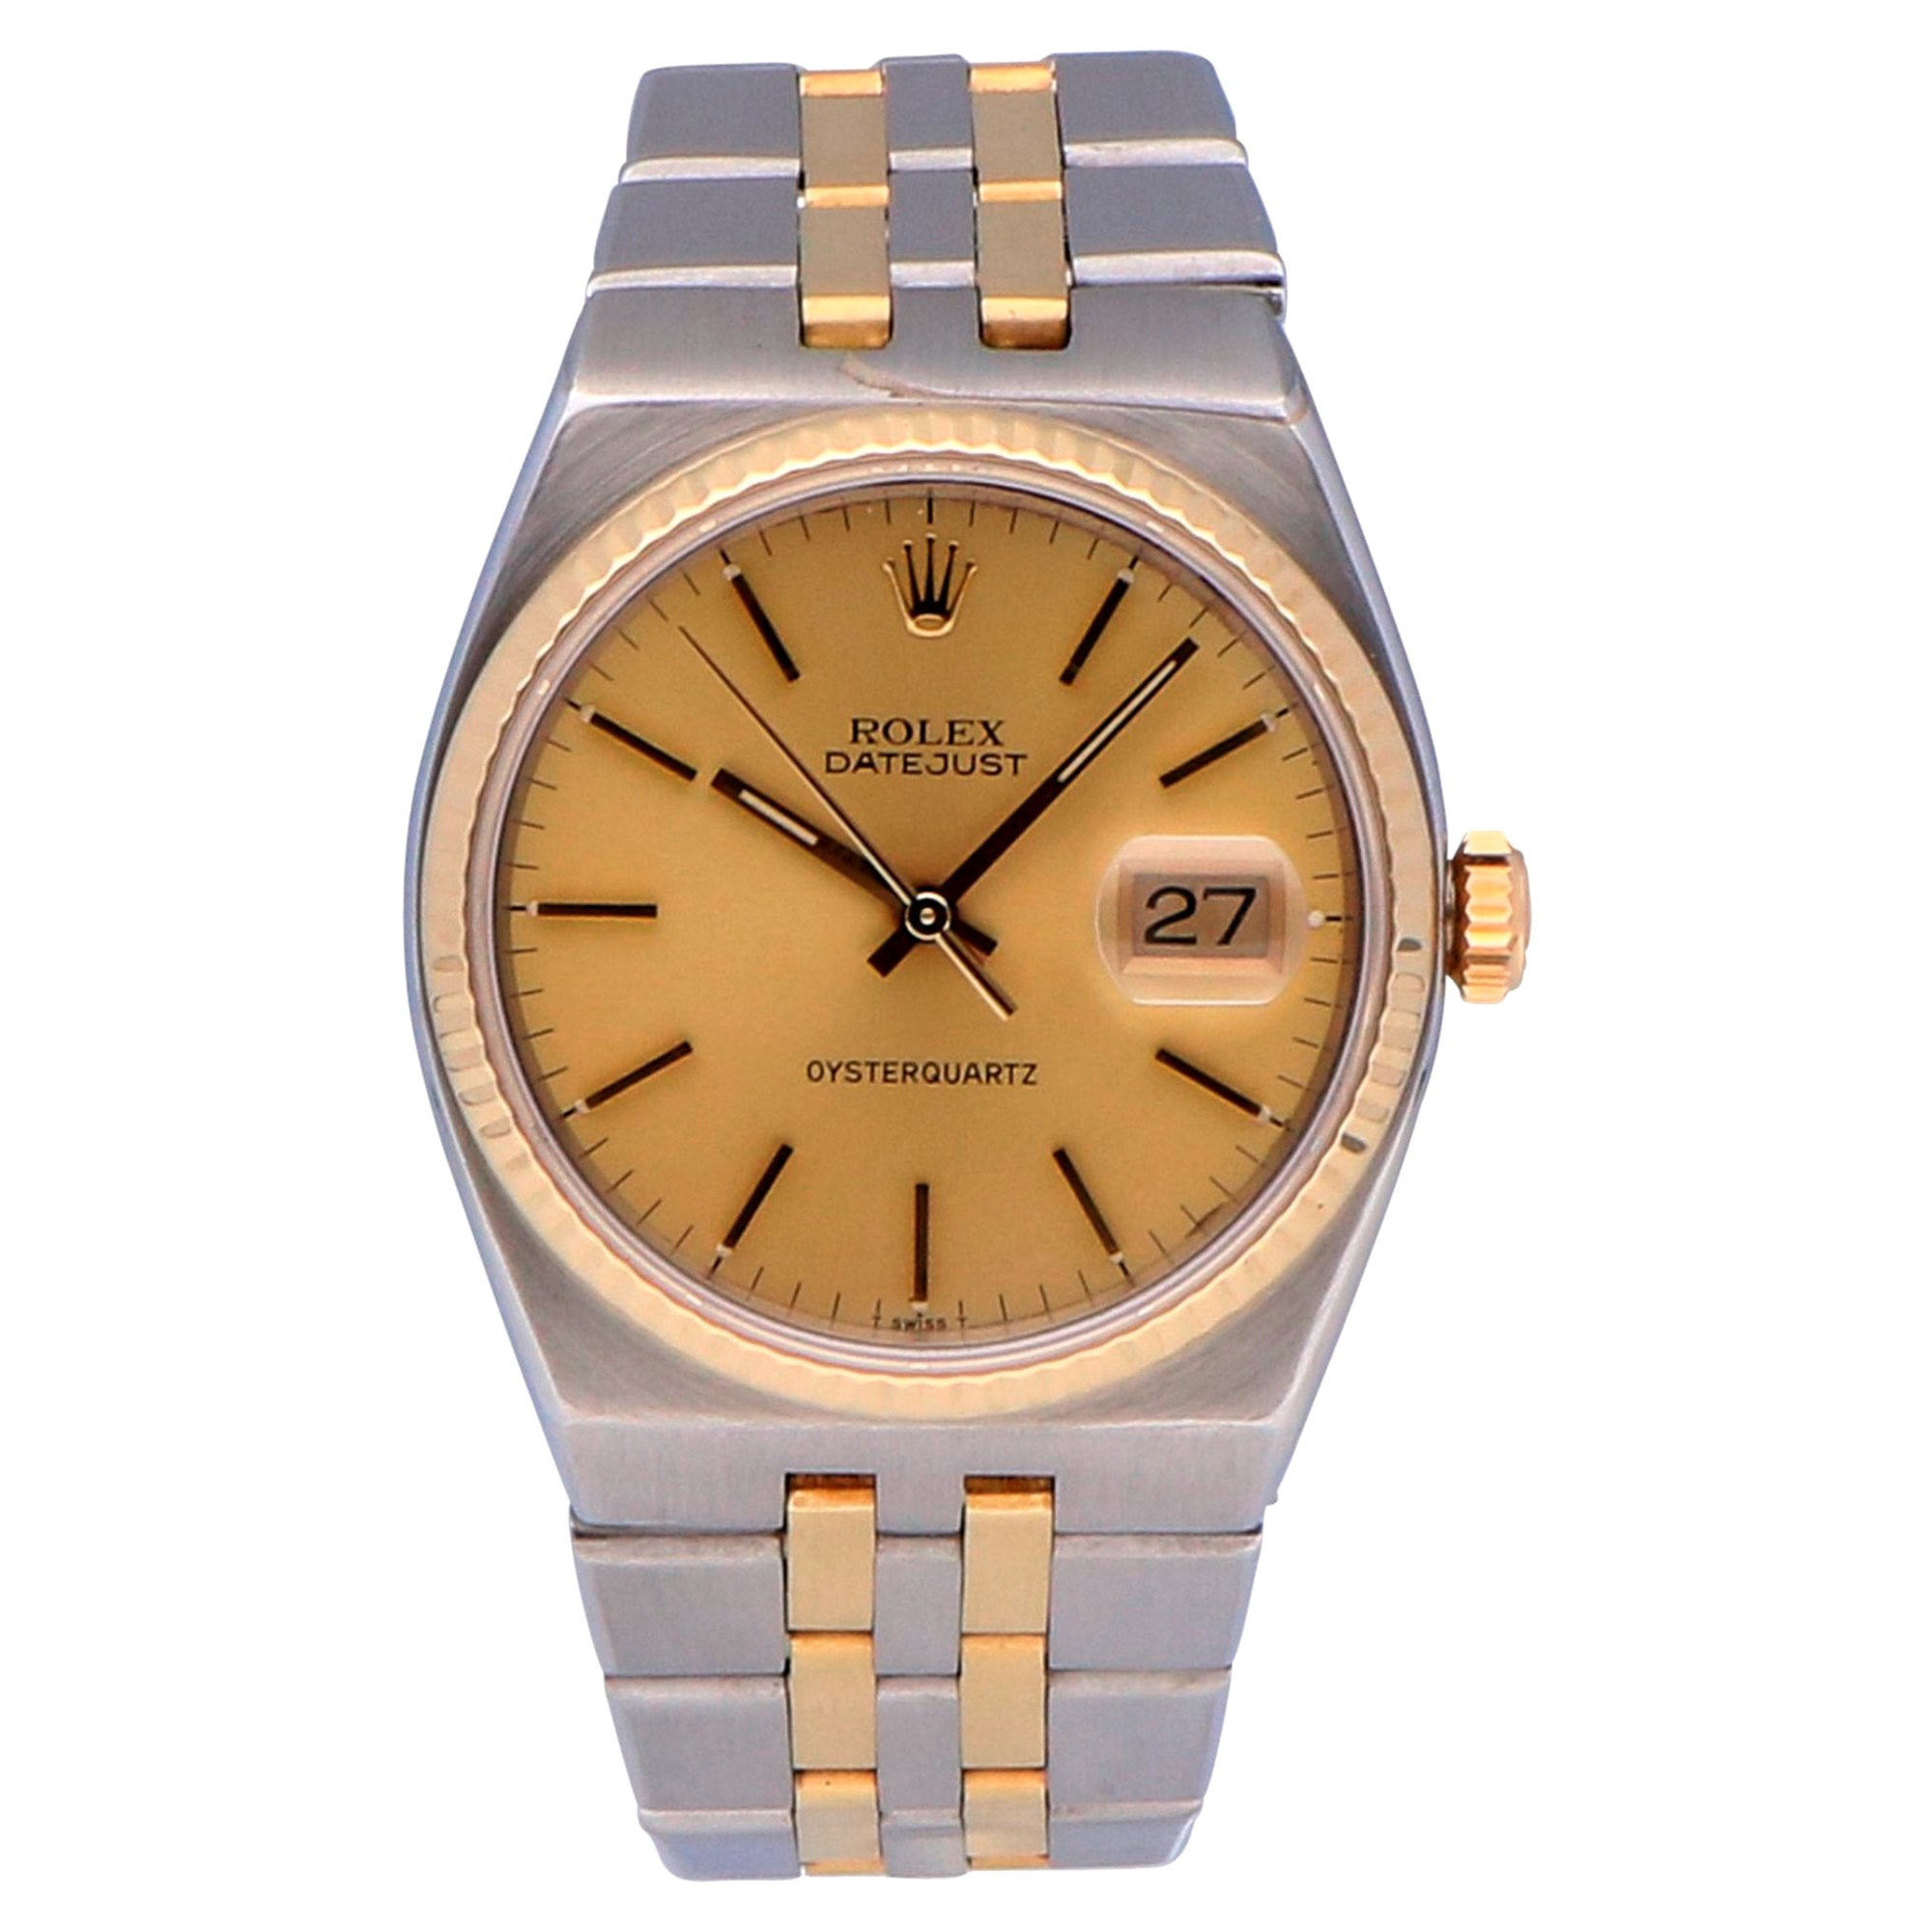 Pre-Owned Rolex Datejust Oysterquartz Stainless Steel and Yellow Gold 17013